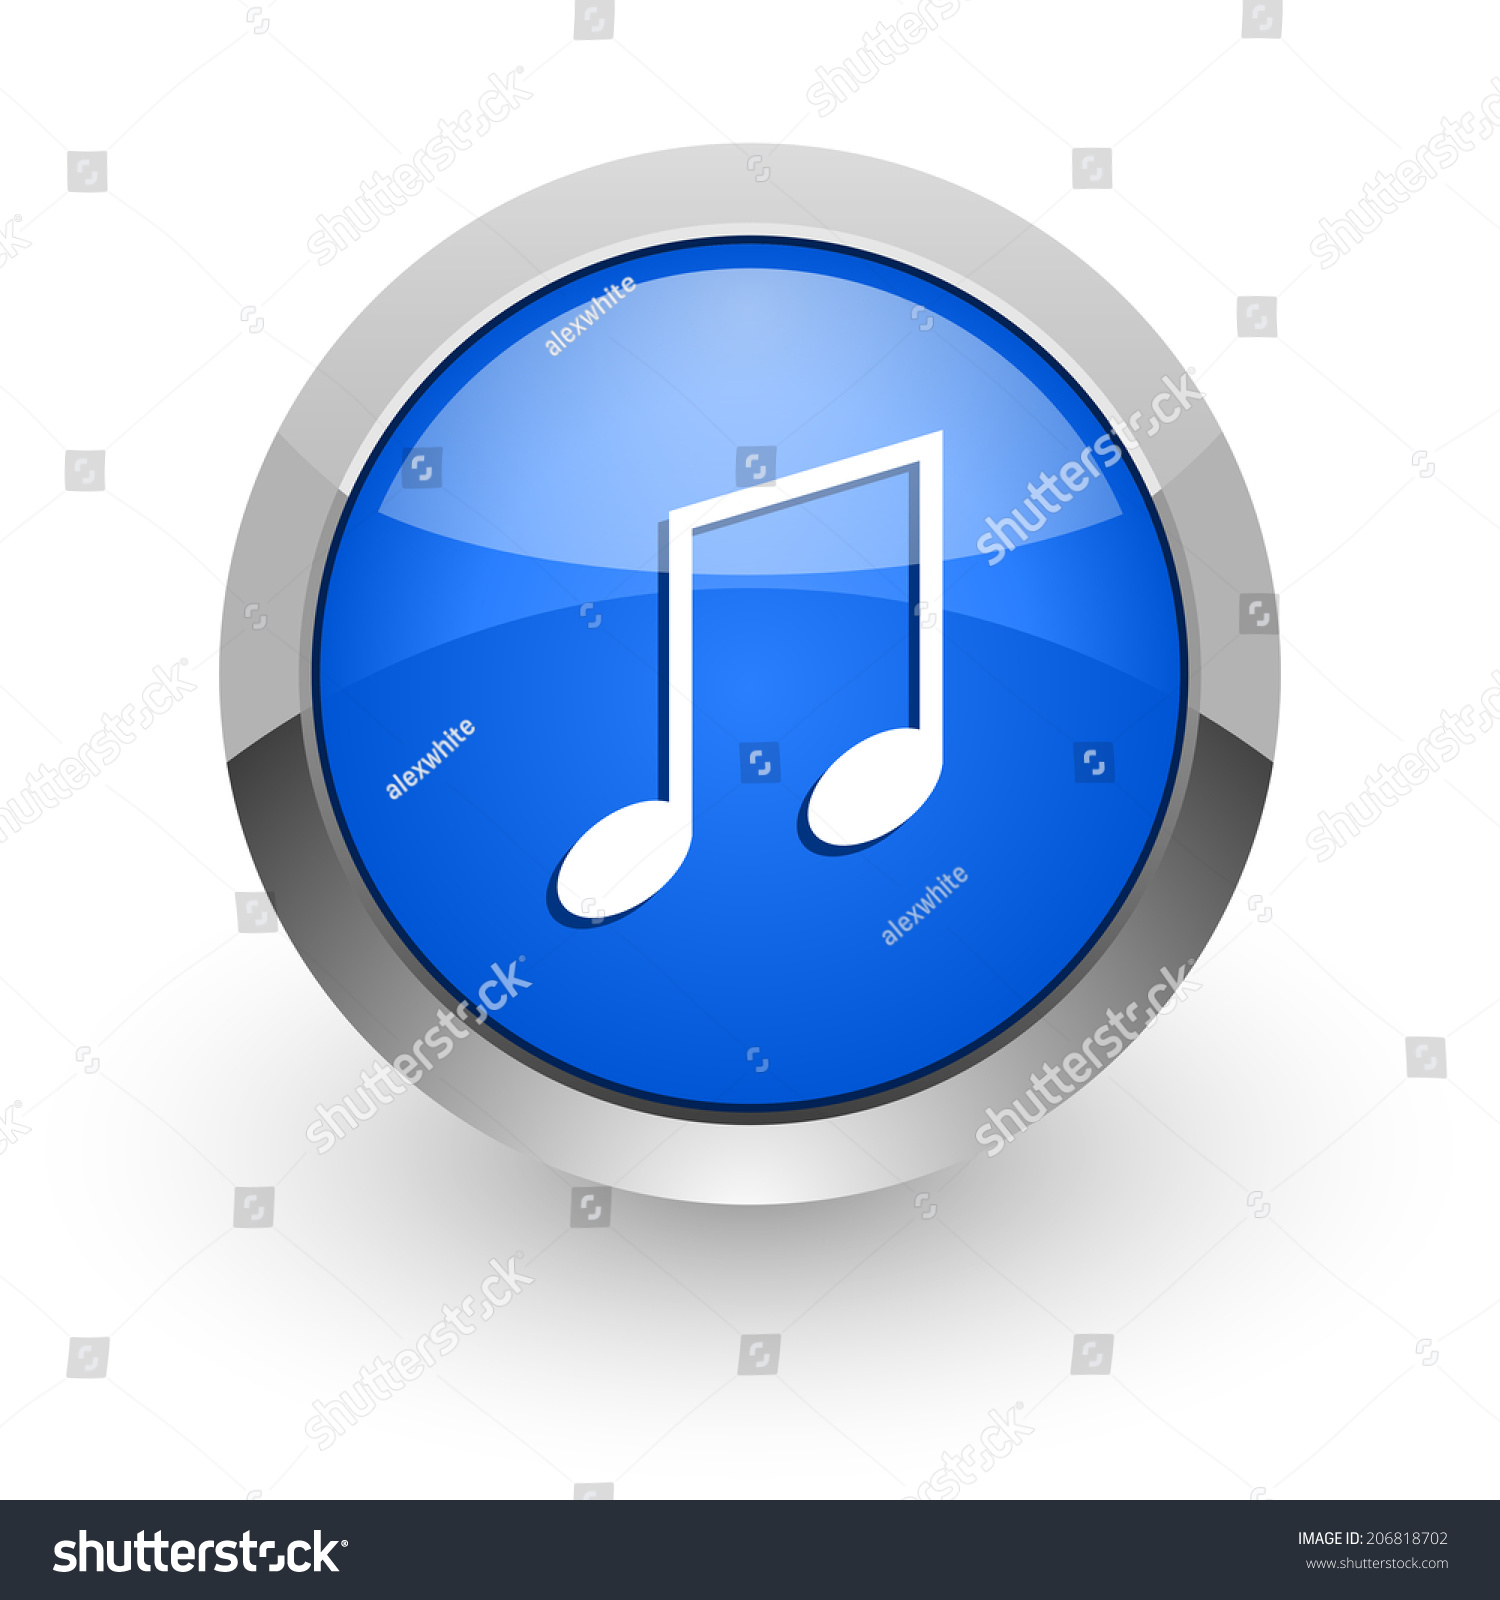 Music Blue Glossy Web Icon Stock Photo 206818702 ...